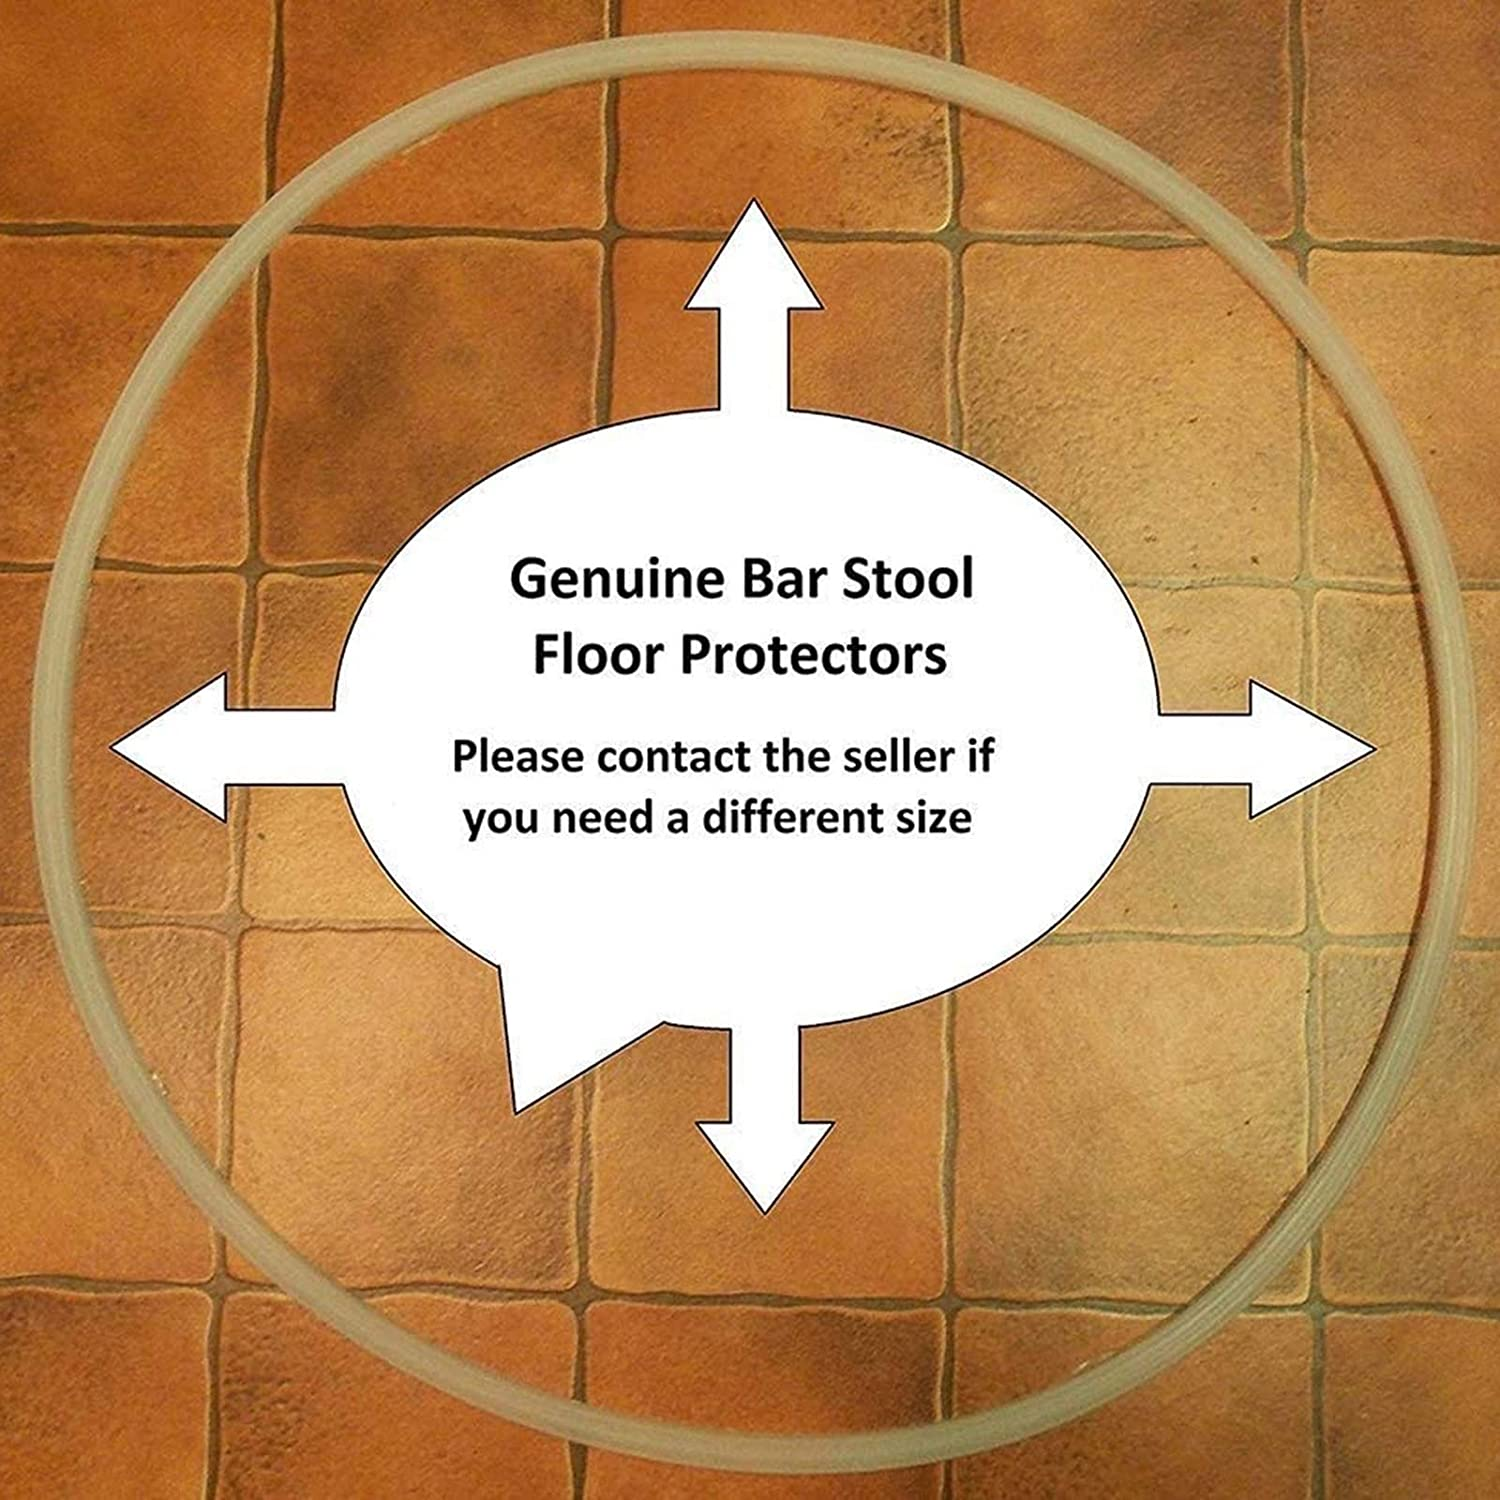 1x 17-18/″ Bar Stool Floor Protector Ring Edge Trim Pads Anti-Scratch Protection Glider Ring